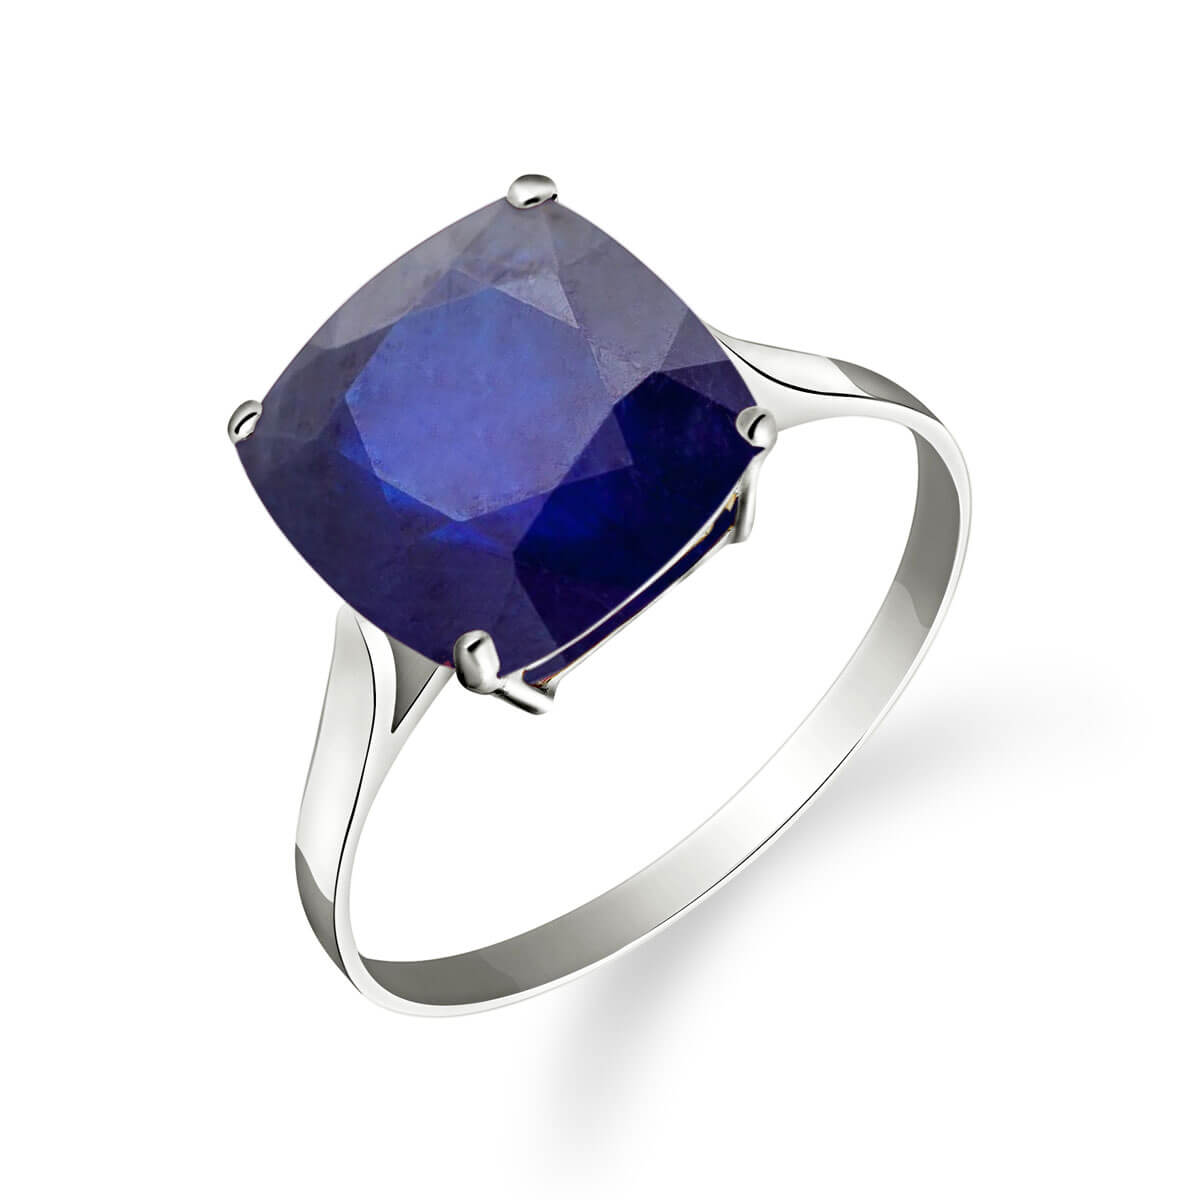 Sapphire Rococo Ring 4.83 ct in 18ct White Gold